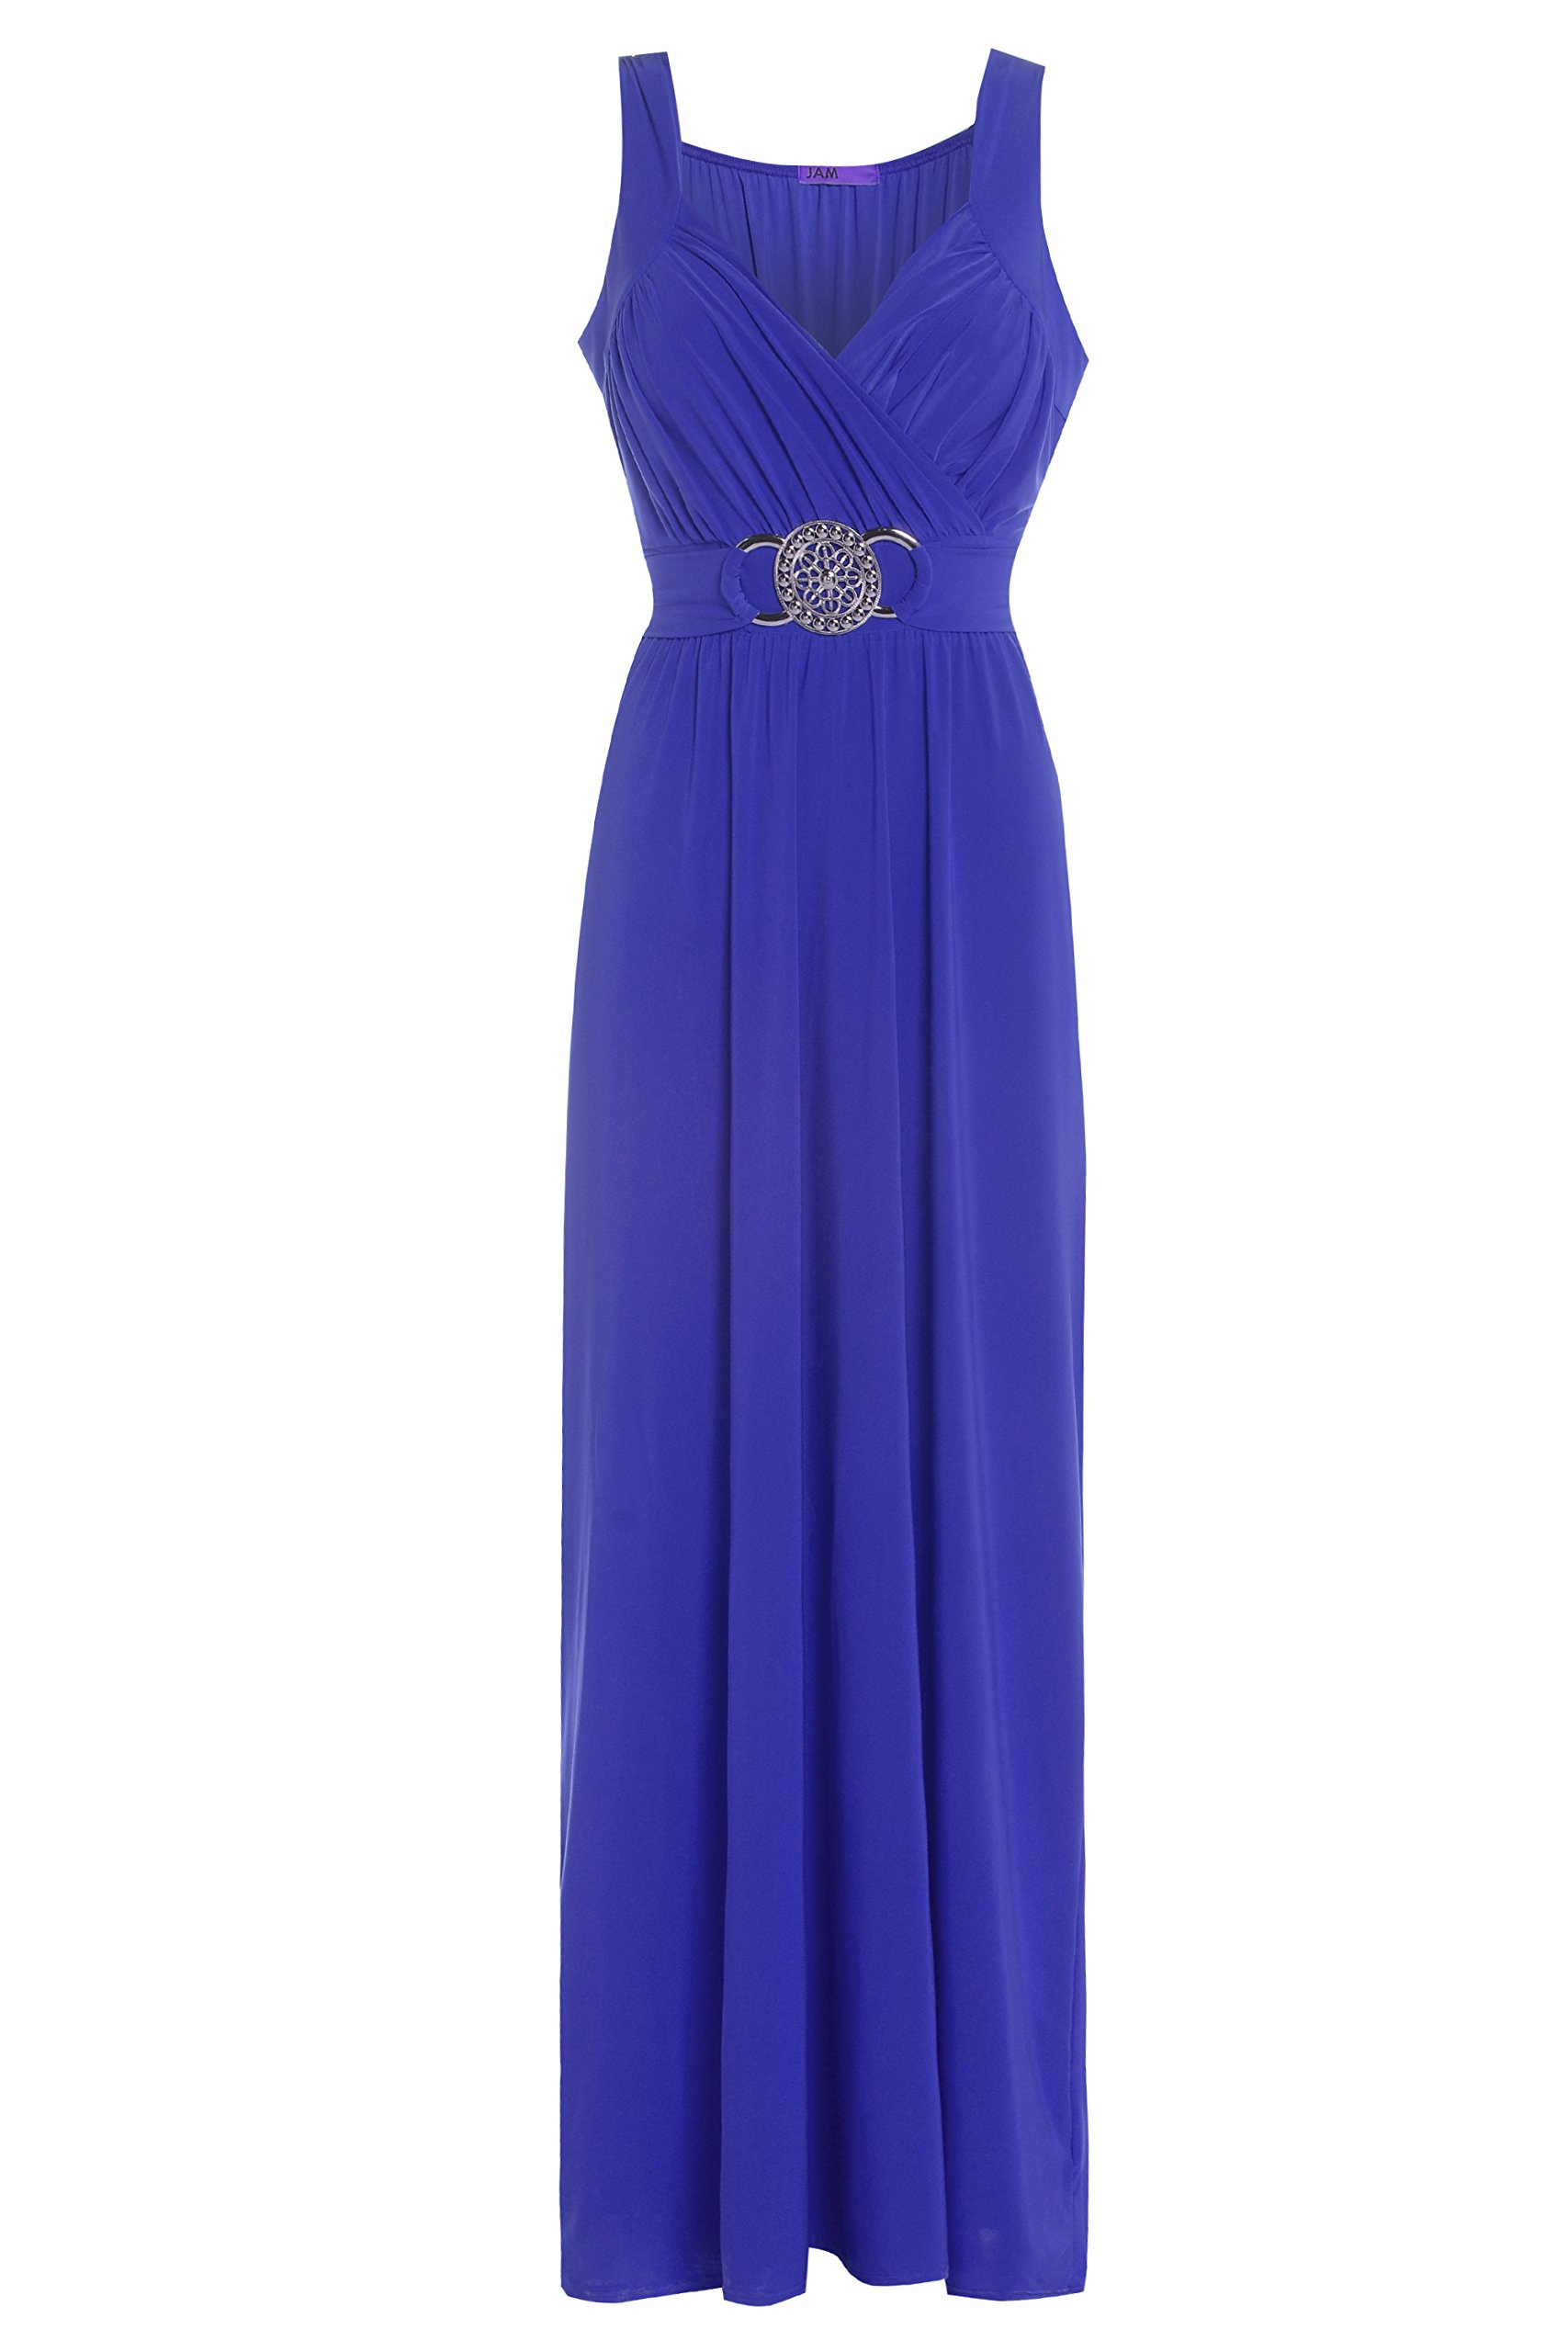 Evening Royal Blue Dress: Amazon.co.uk